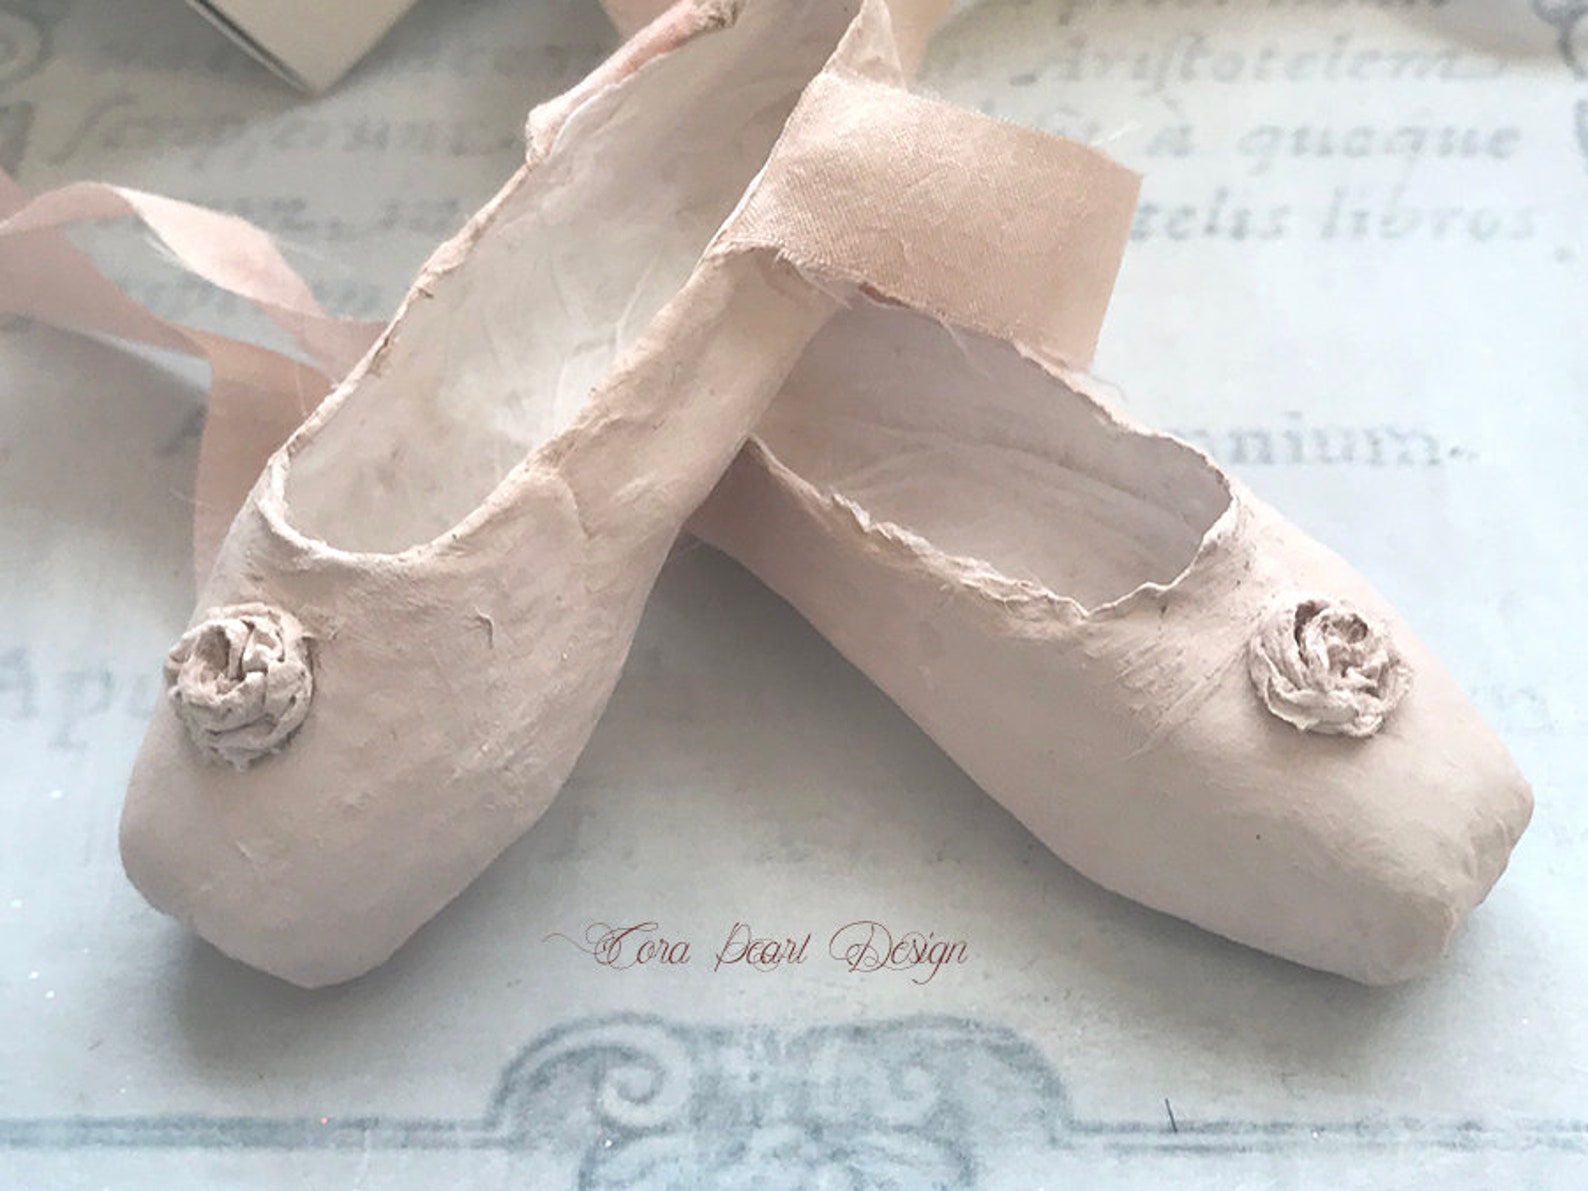 paper rose and silk pink paper miniature pointe shoes in gift box - paper ballet shoes - paper sculpture - ballet gifts